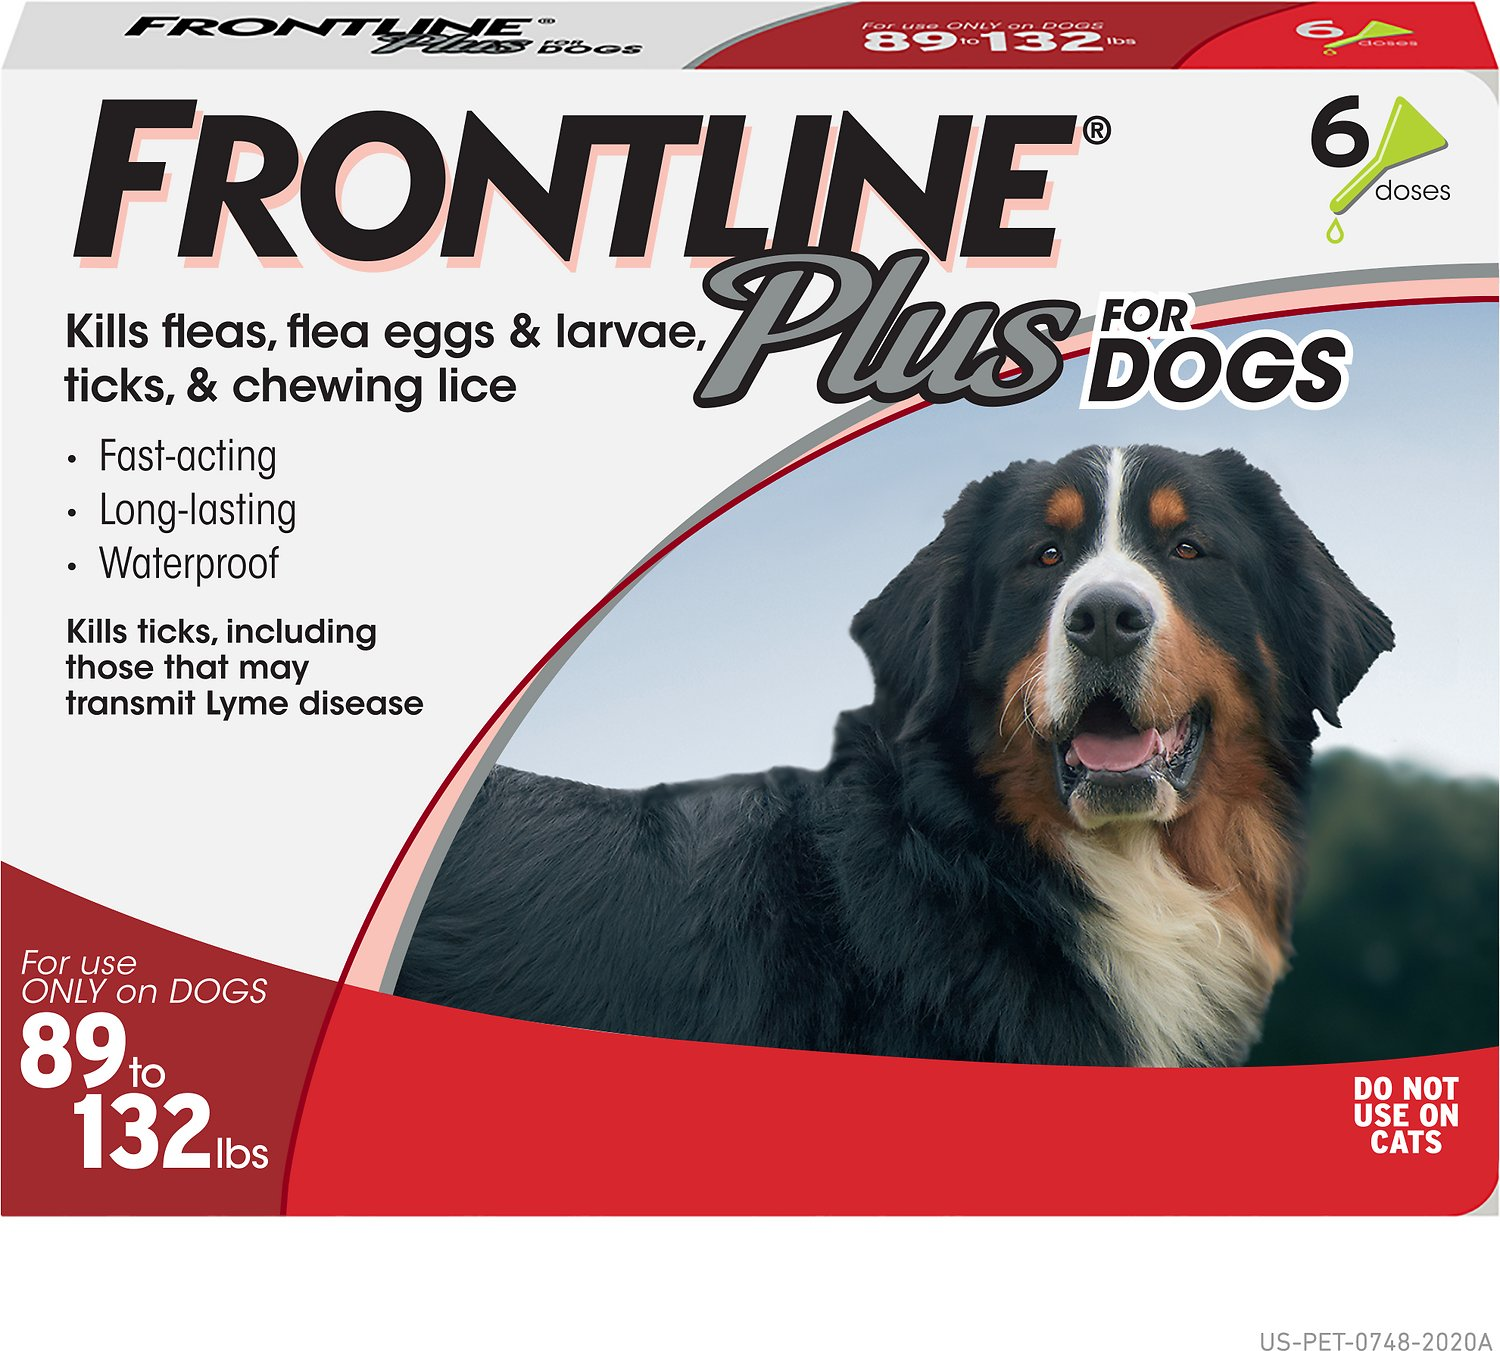 frontline plus ingredients. Frontline Plus Flea \u0026 Tick Treatment For Dogs, 89-132 Lbs, 6 Treatments - Chewy.com Ingredients O